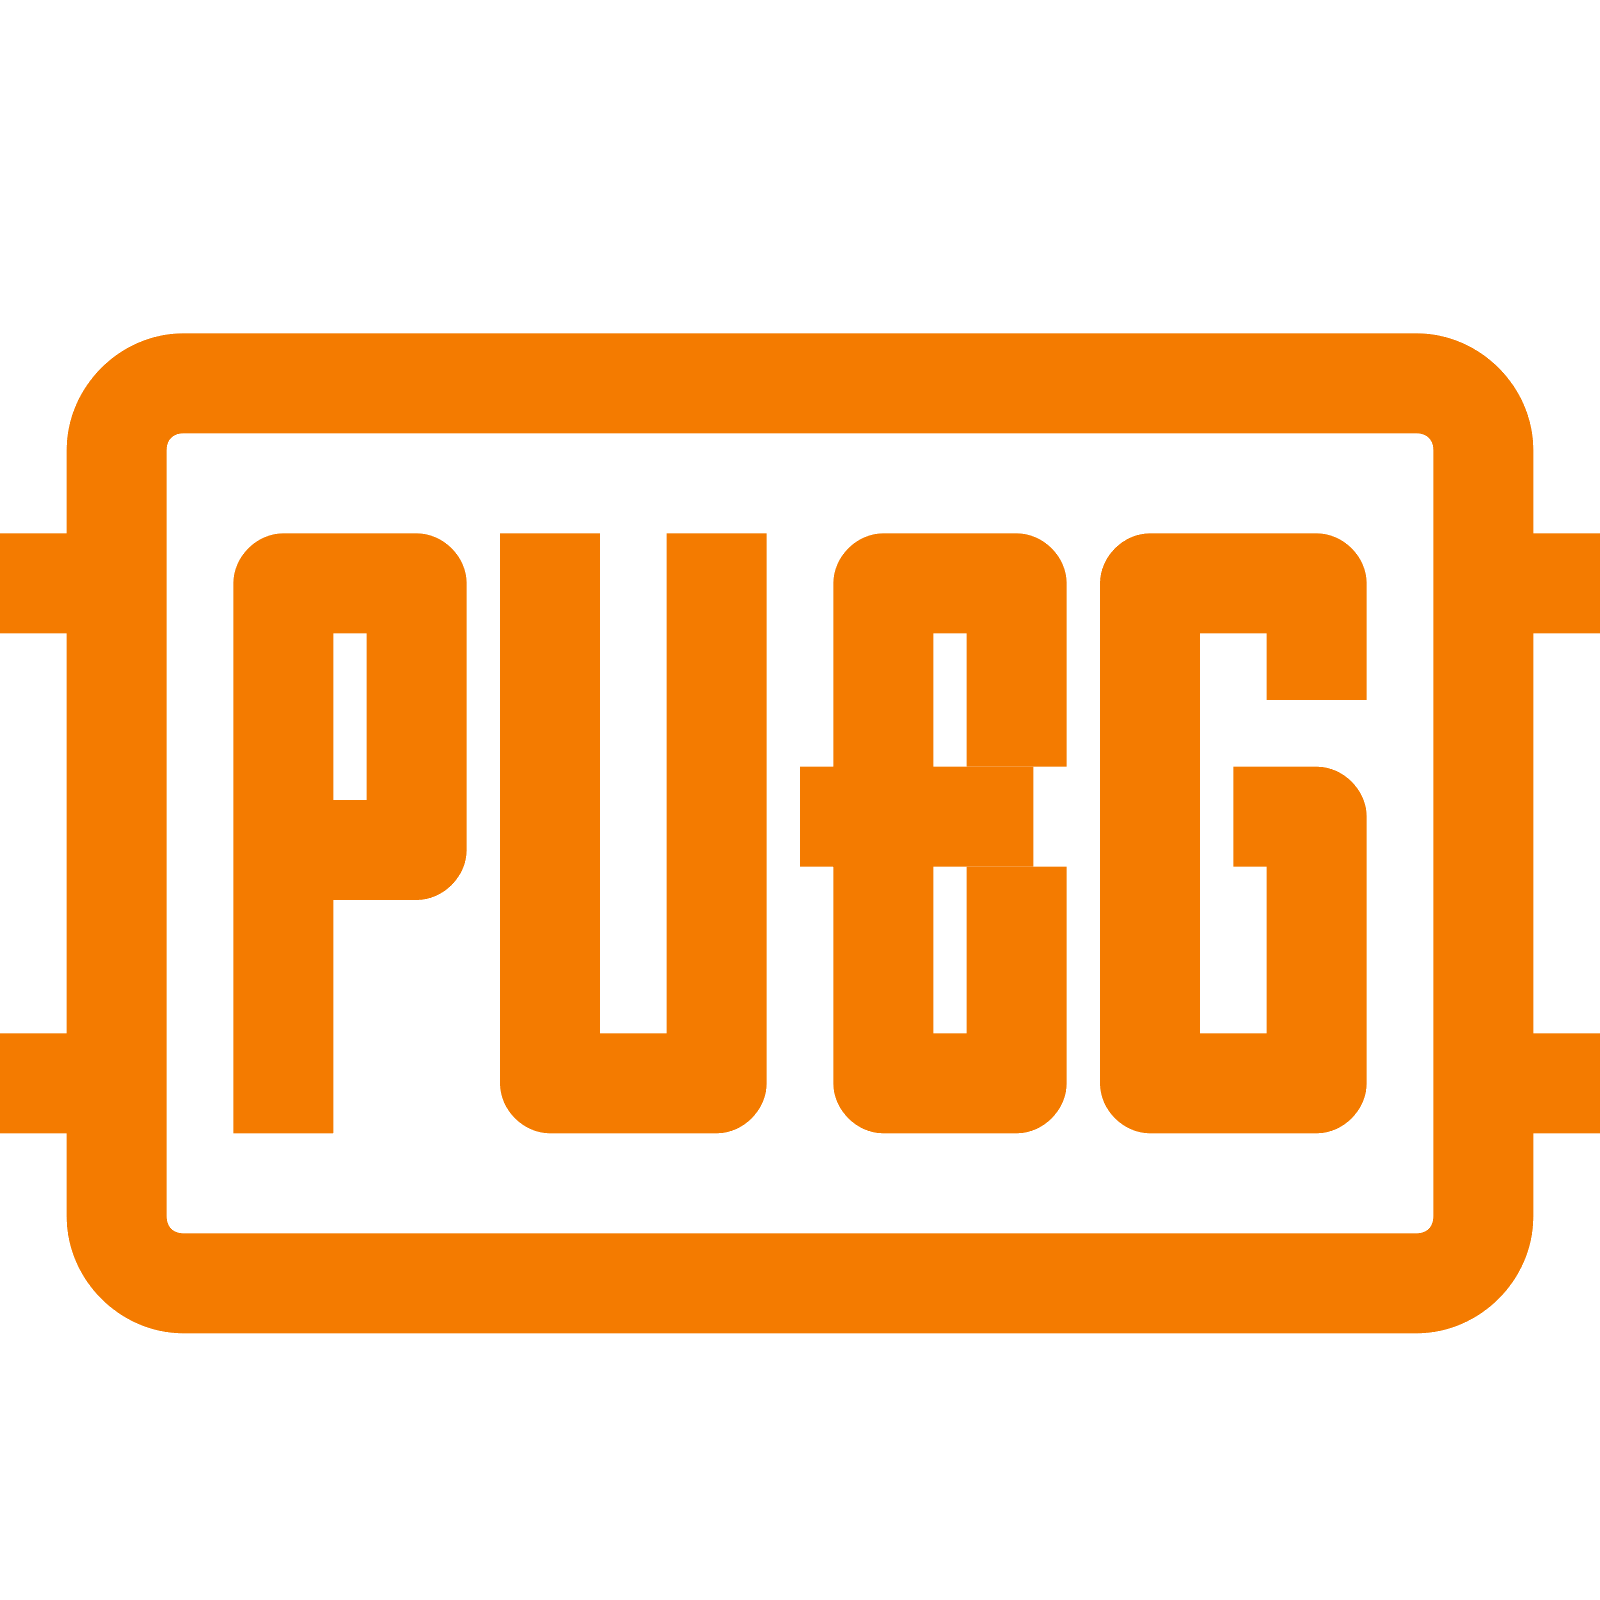 Icon free download and. Pubg png graphic transparent library